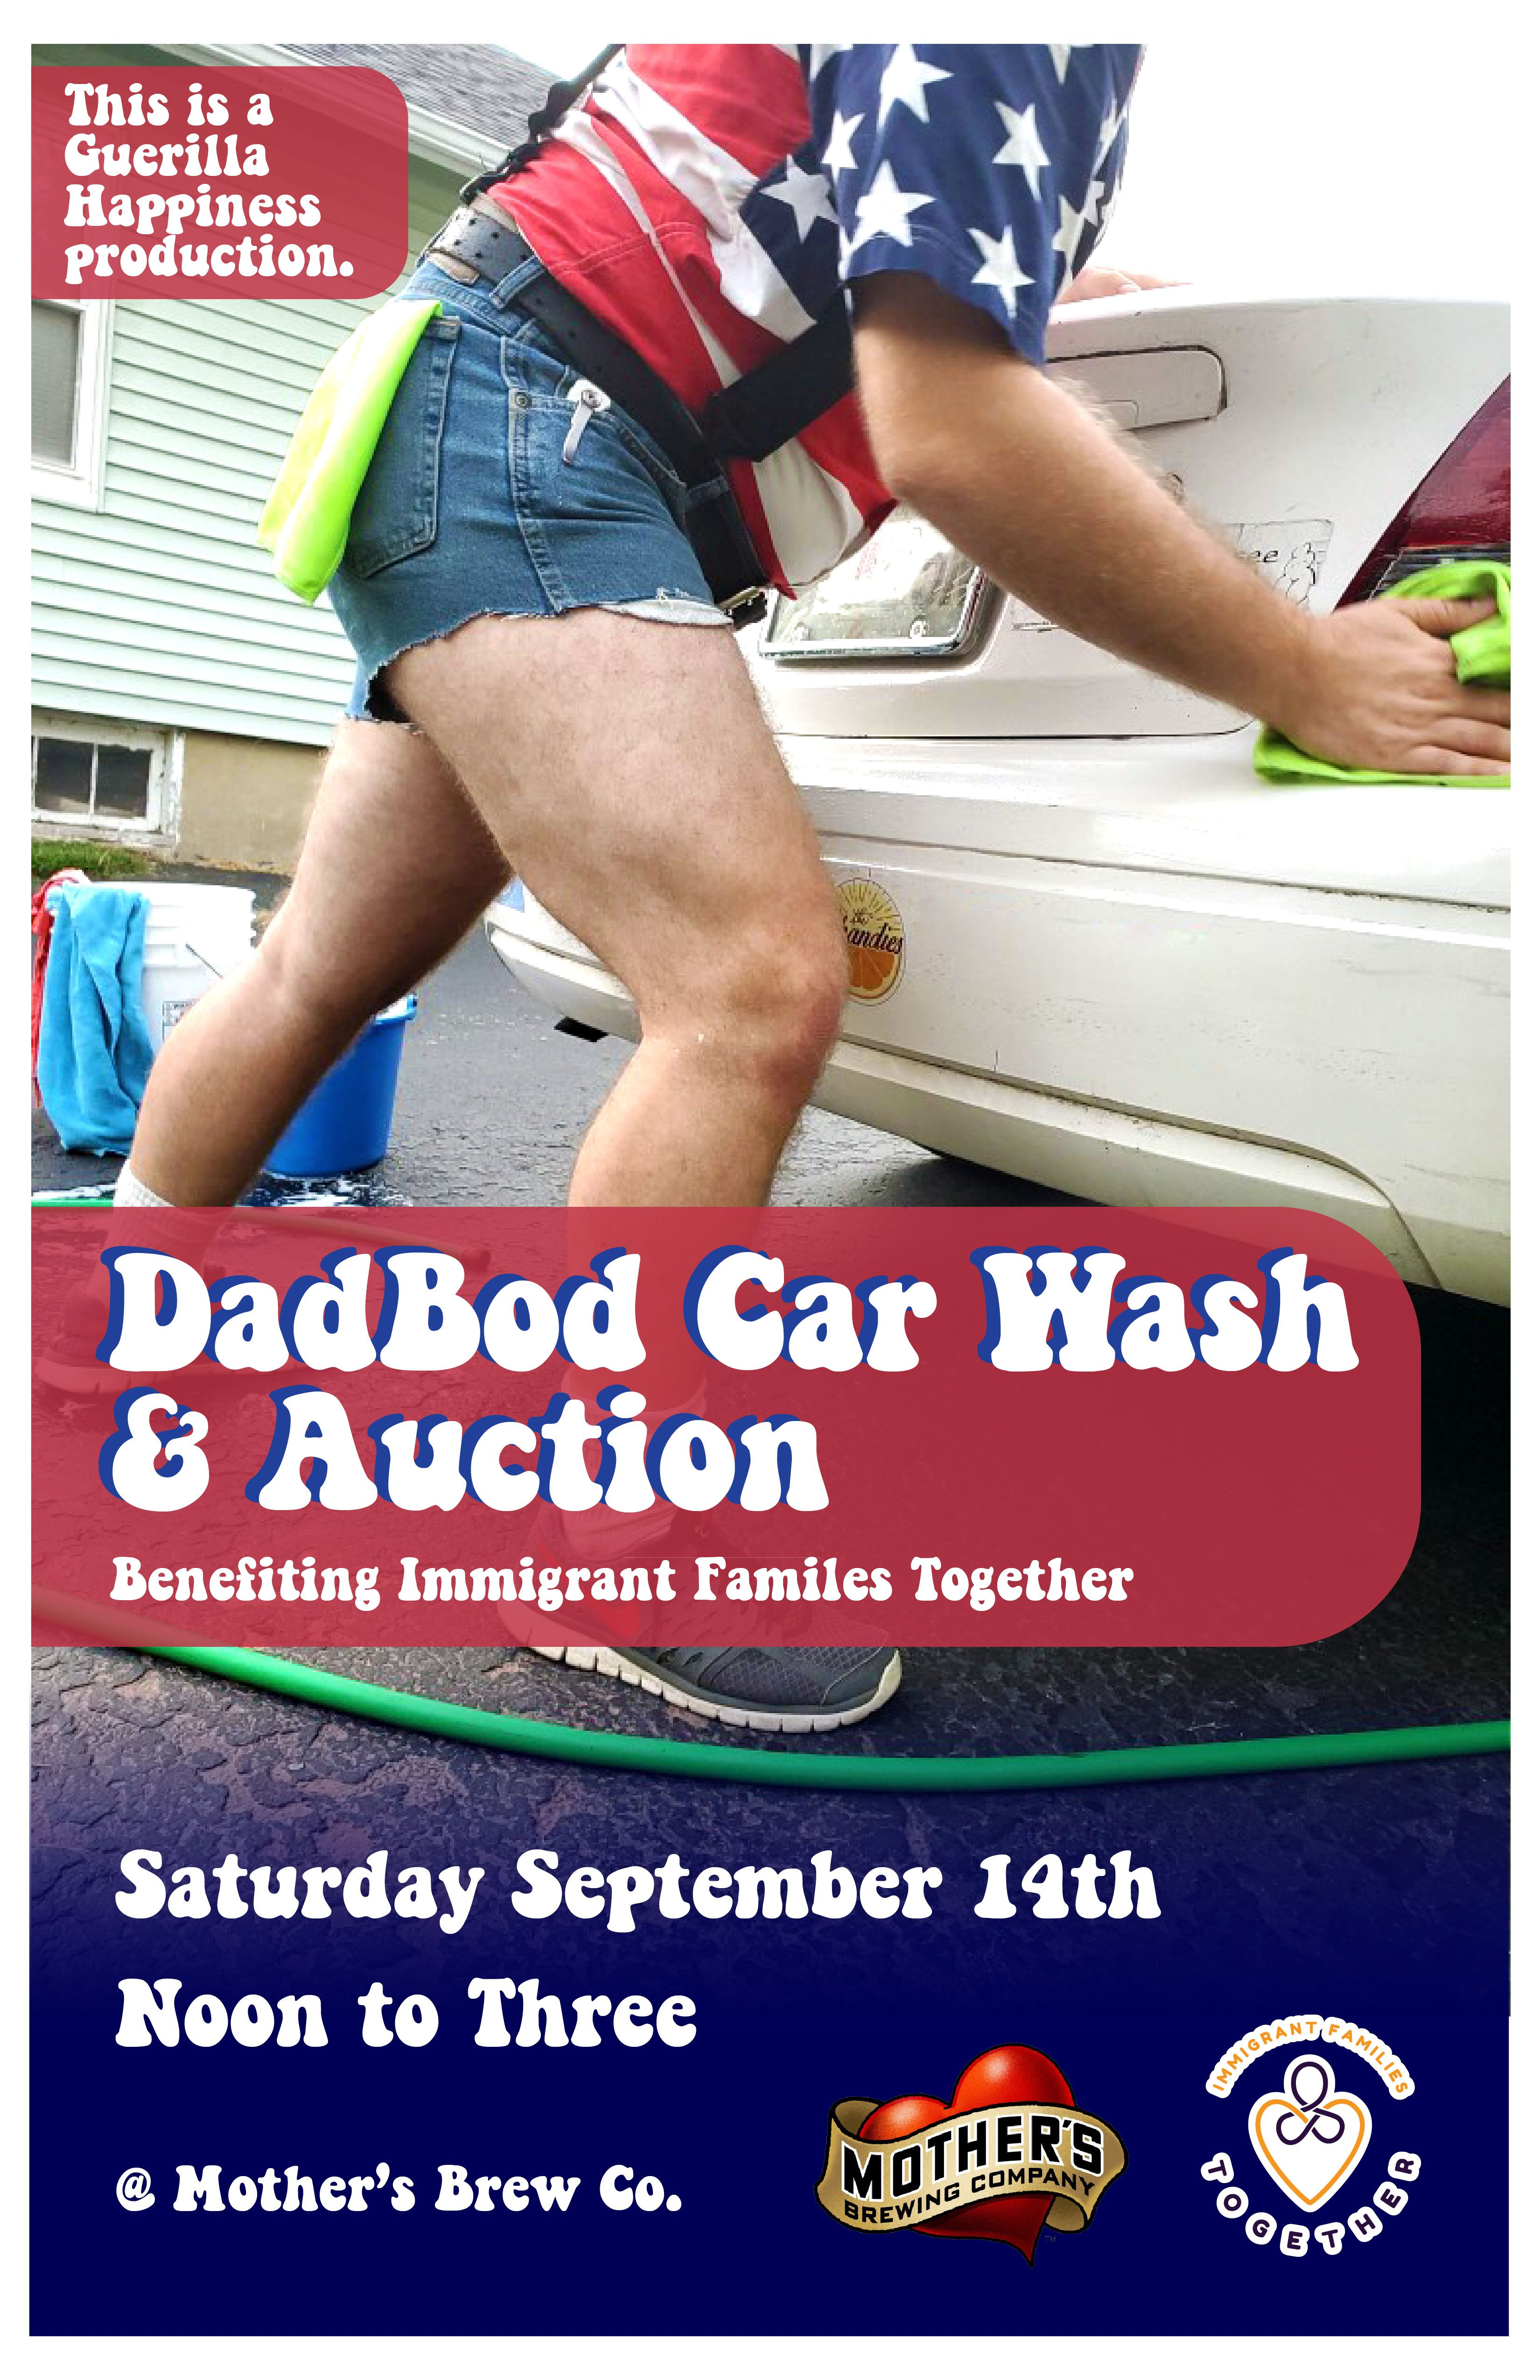 Car wash fundraiser in Springfield, MO